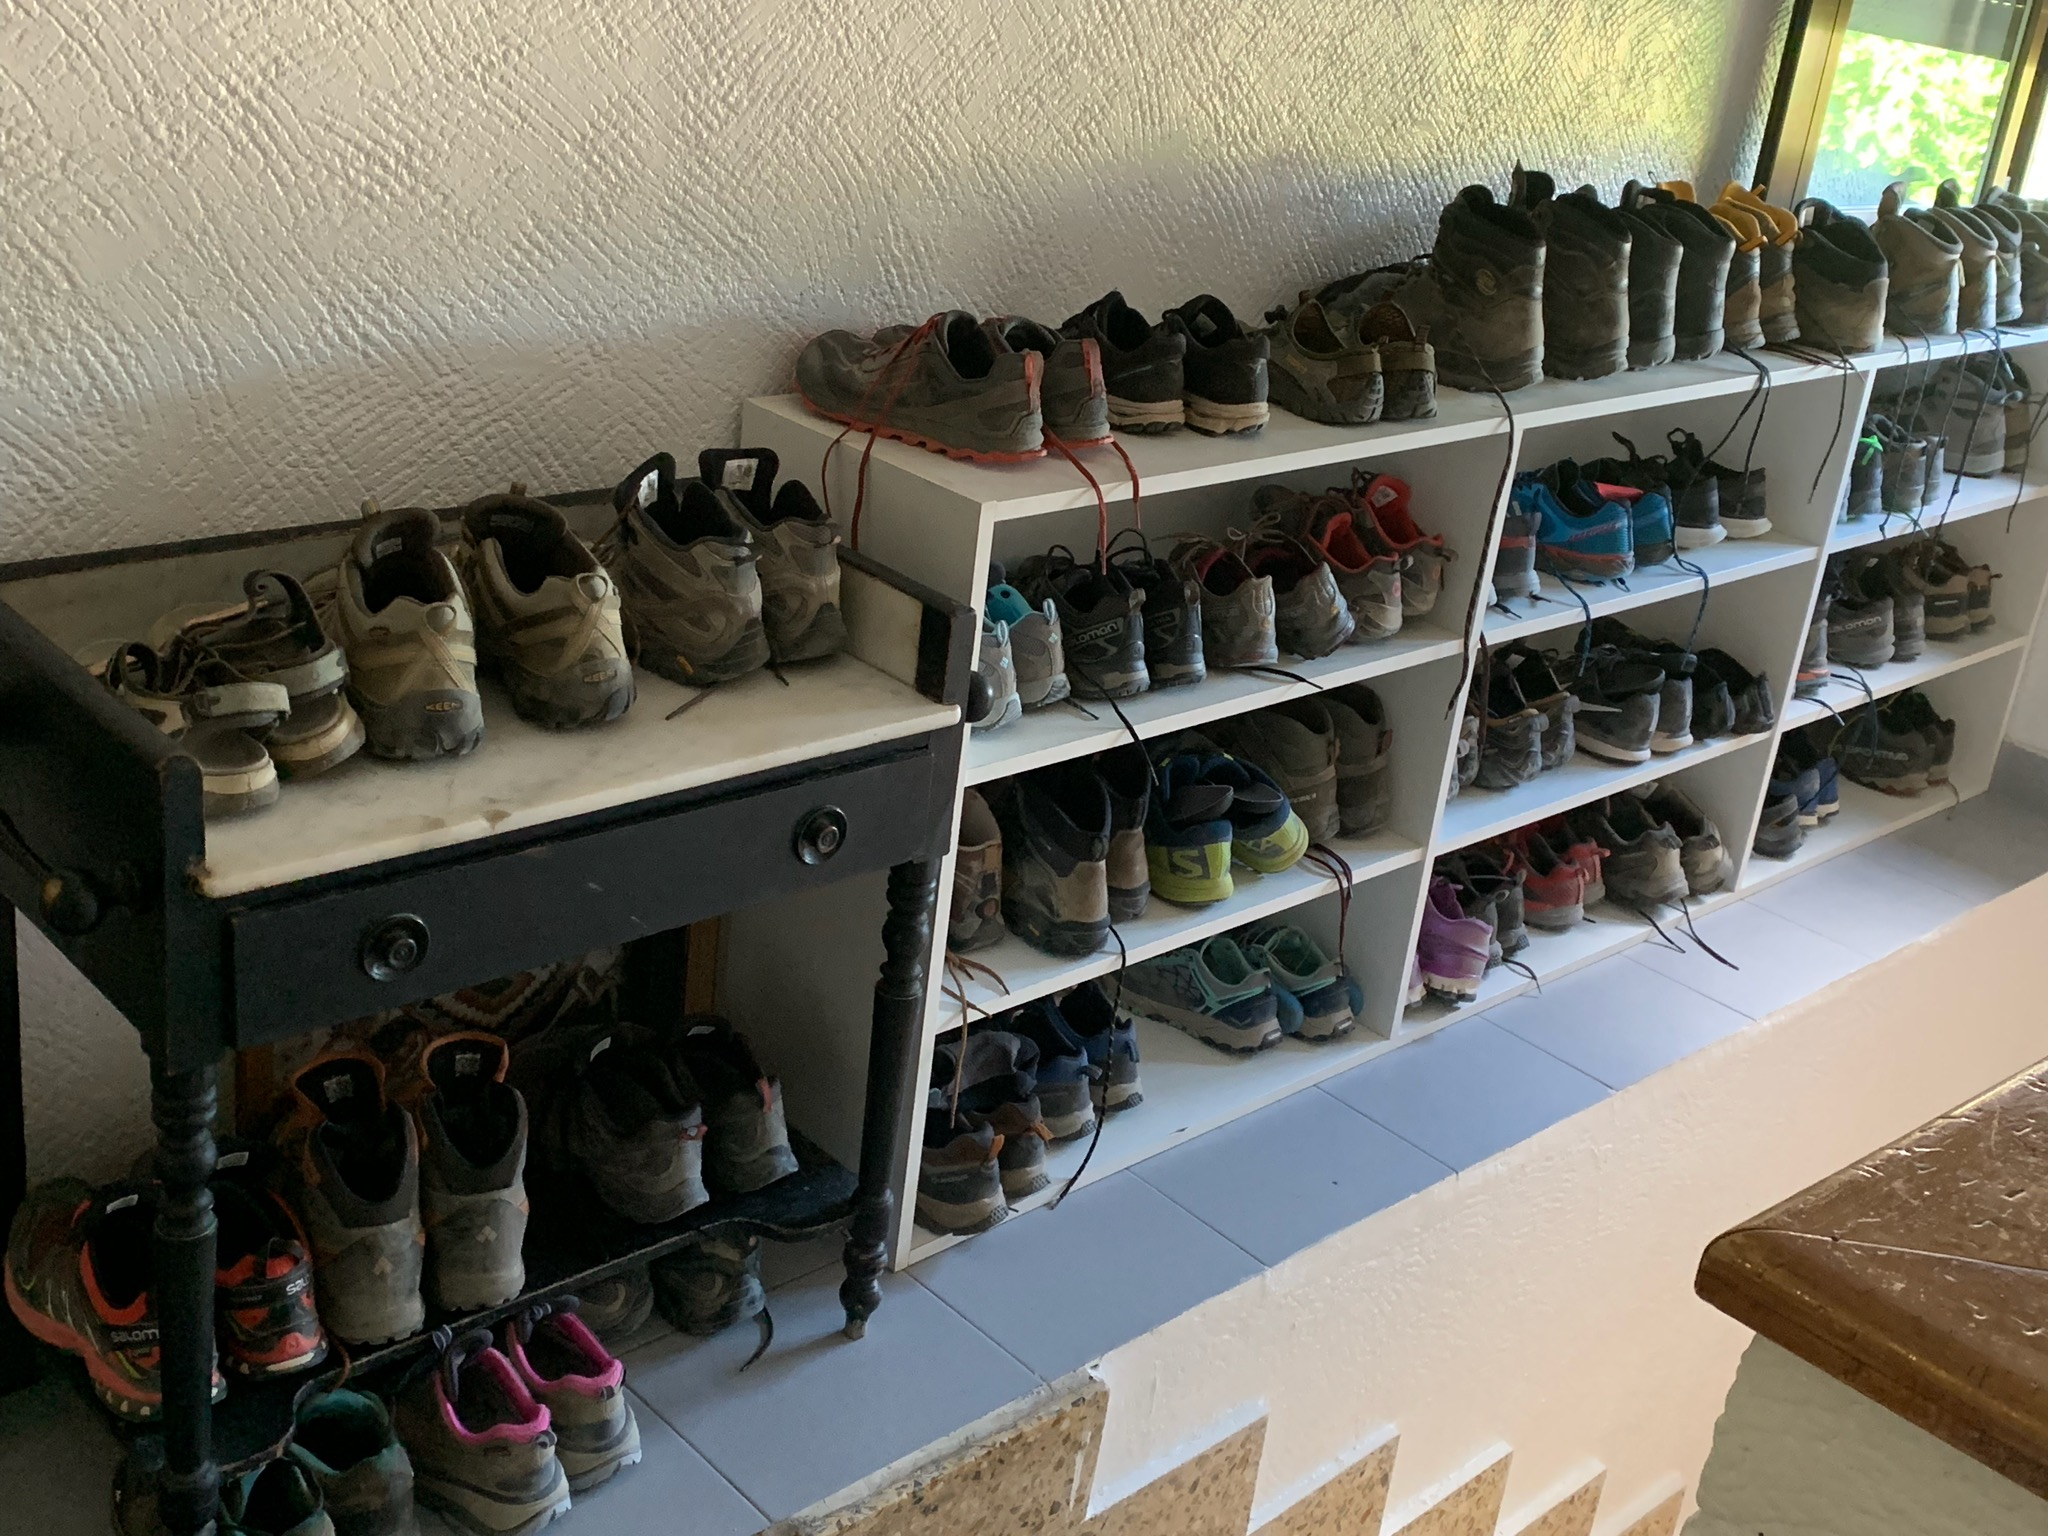 These are the shoes of all the pilgrims at a hostel/albergue